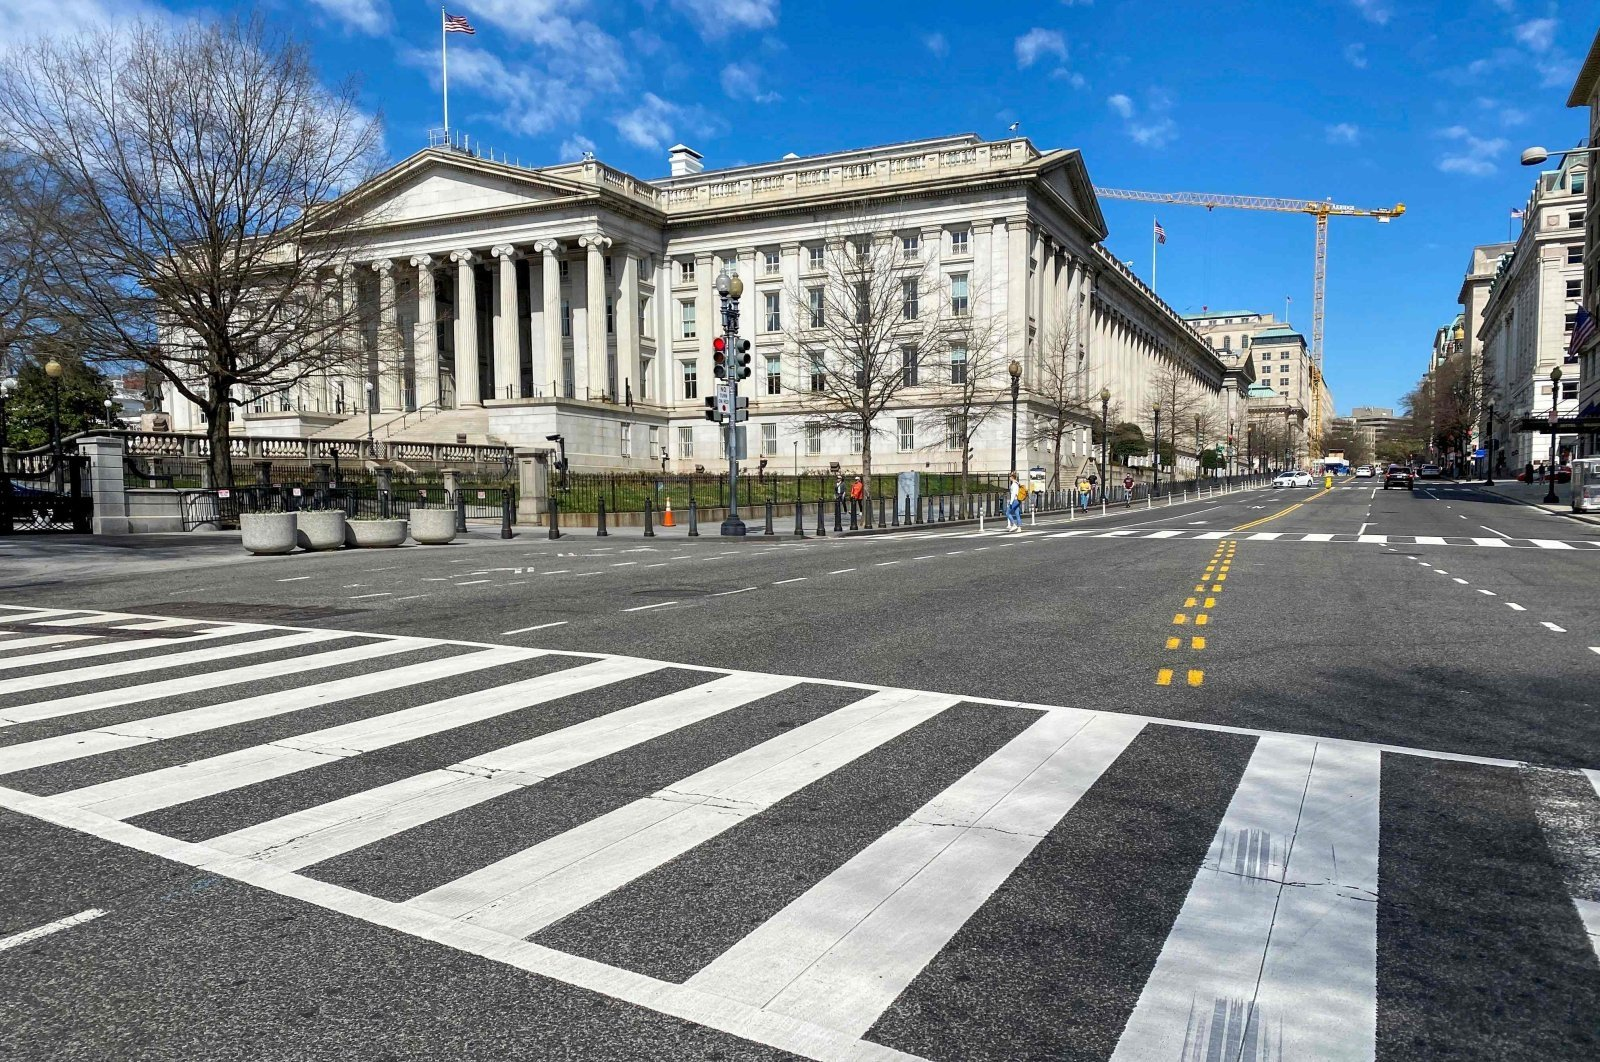 The U.S. Treasury Department building stands next to an almost empty 15th Street at noon in Washington, D.C., U.S., March 13, 2020. (AFP Photo)